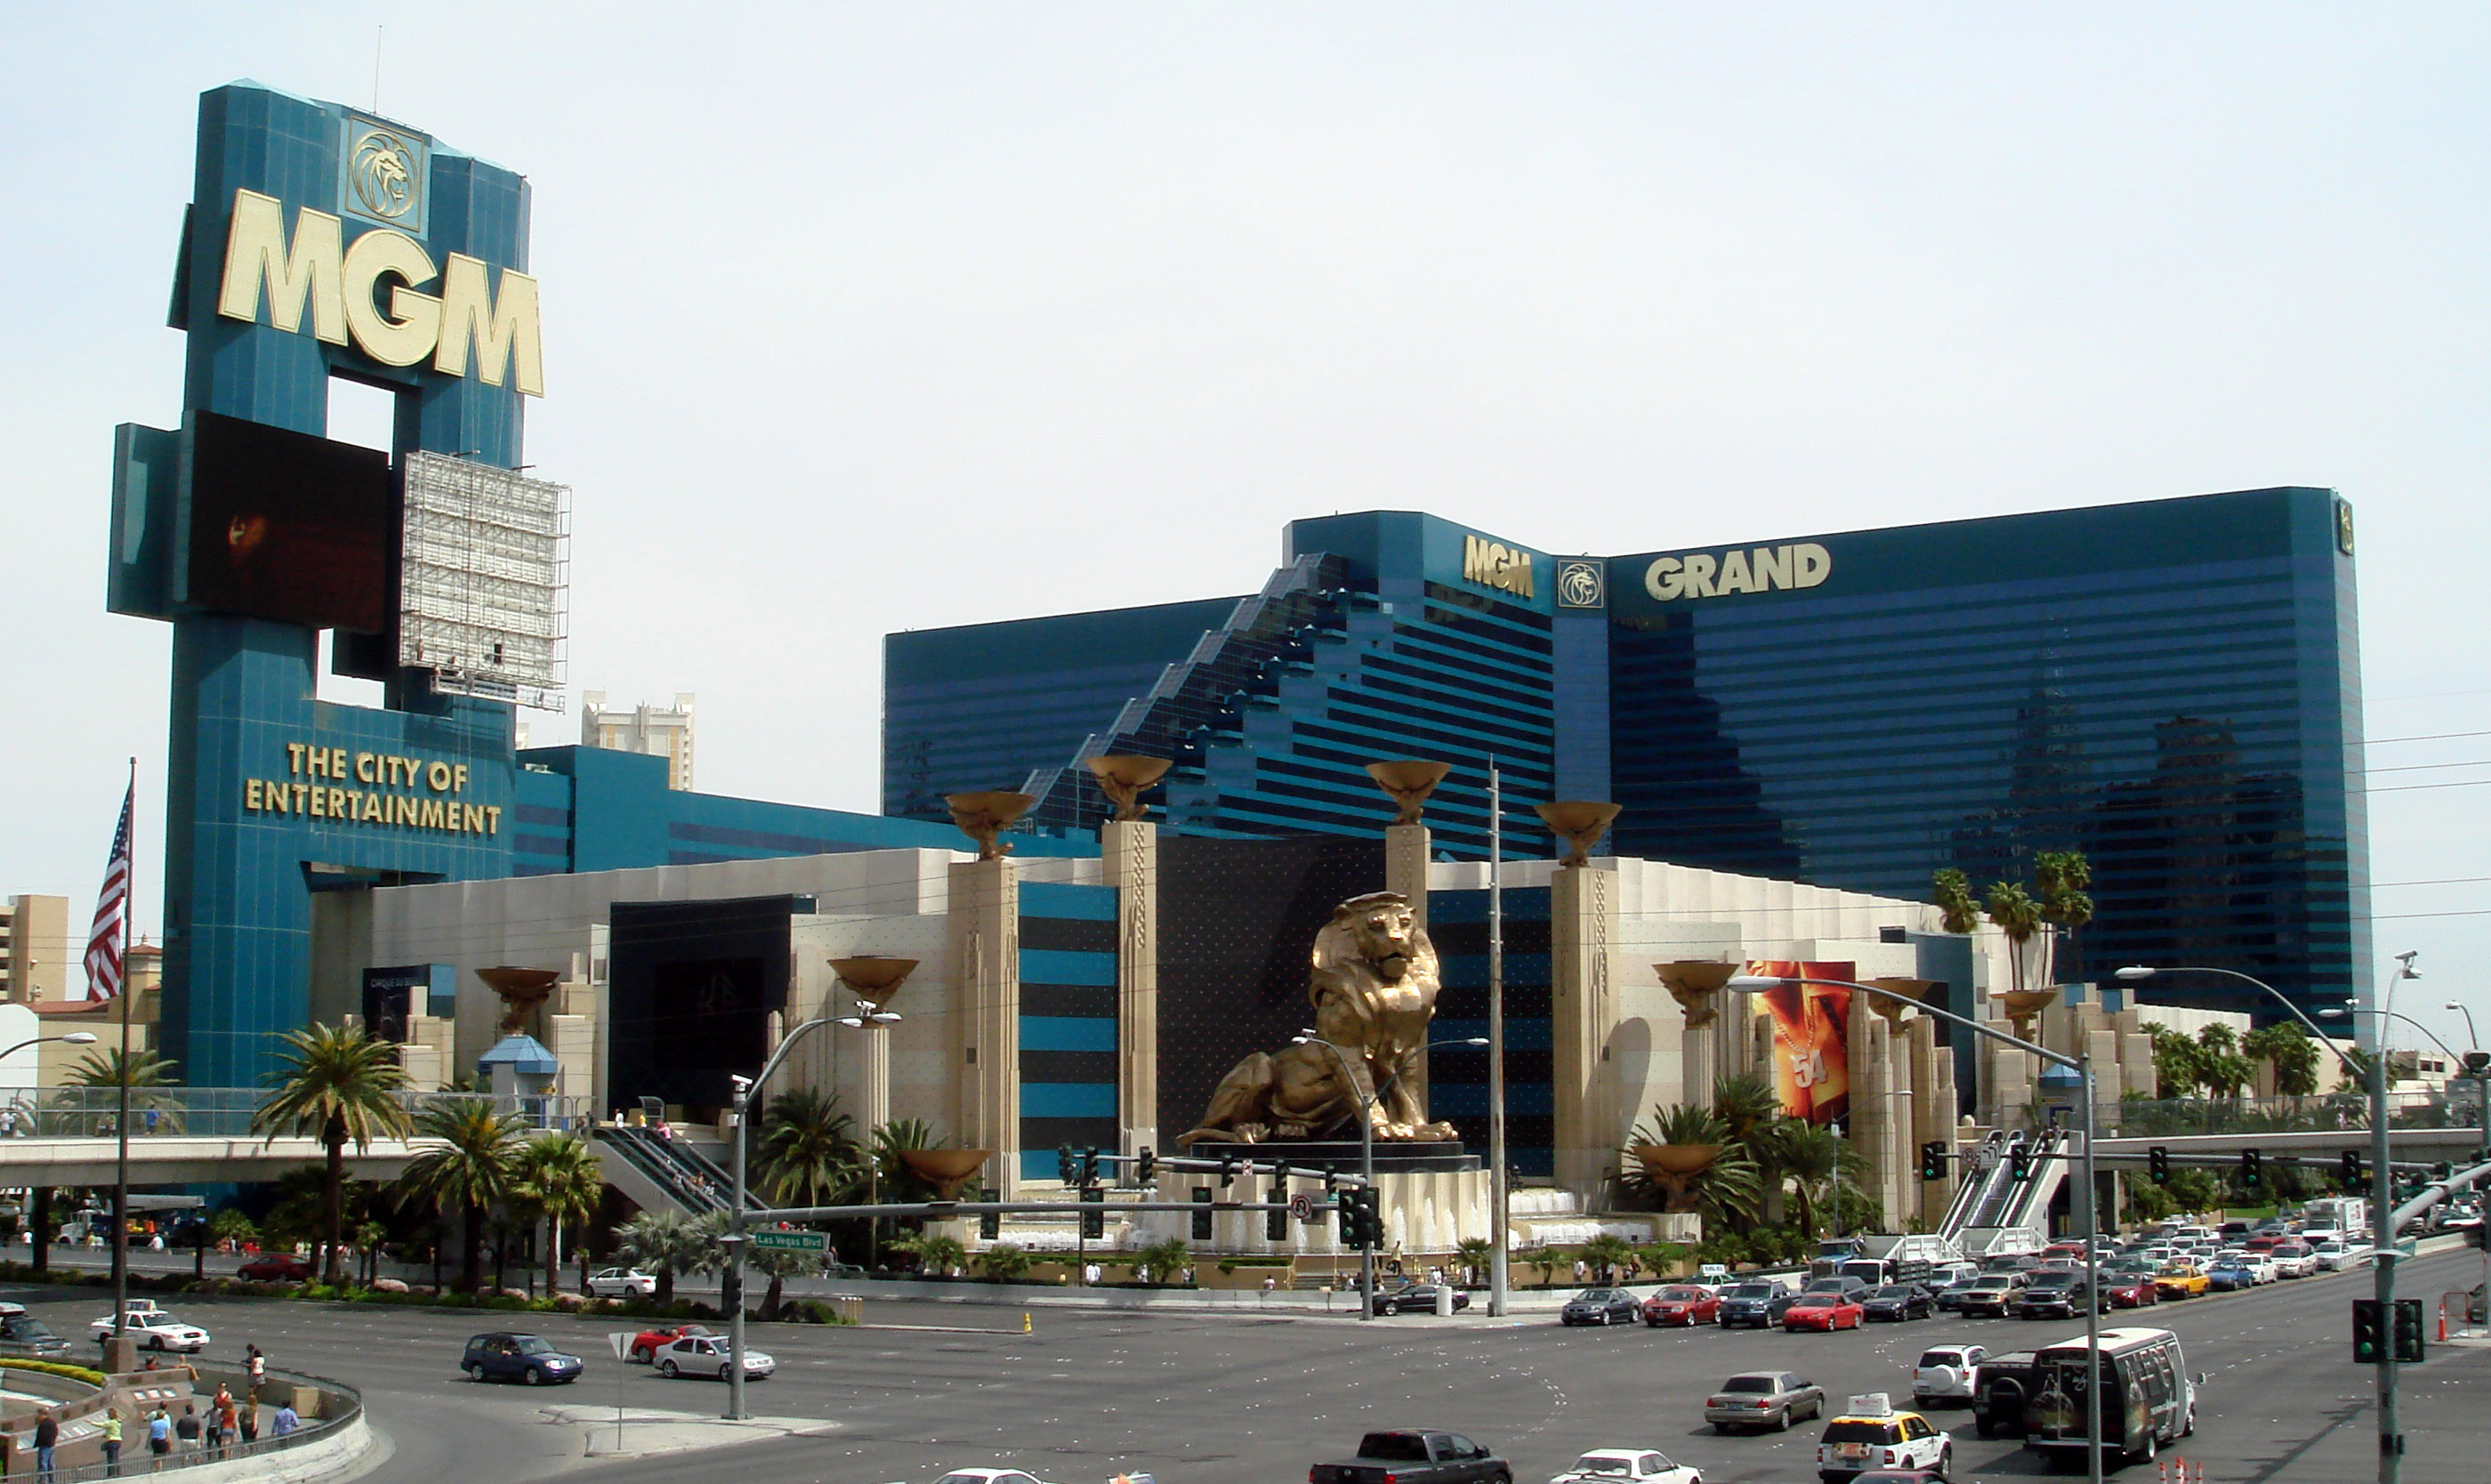 mgm in vegas